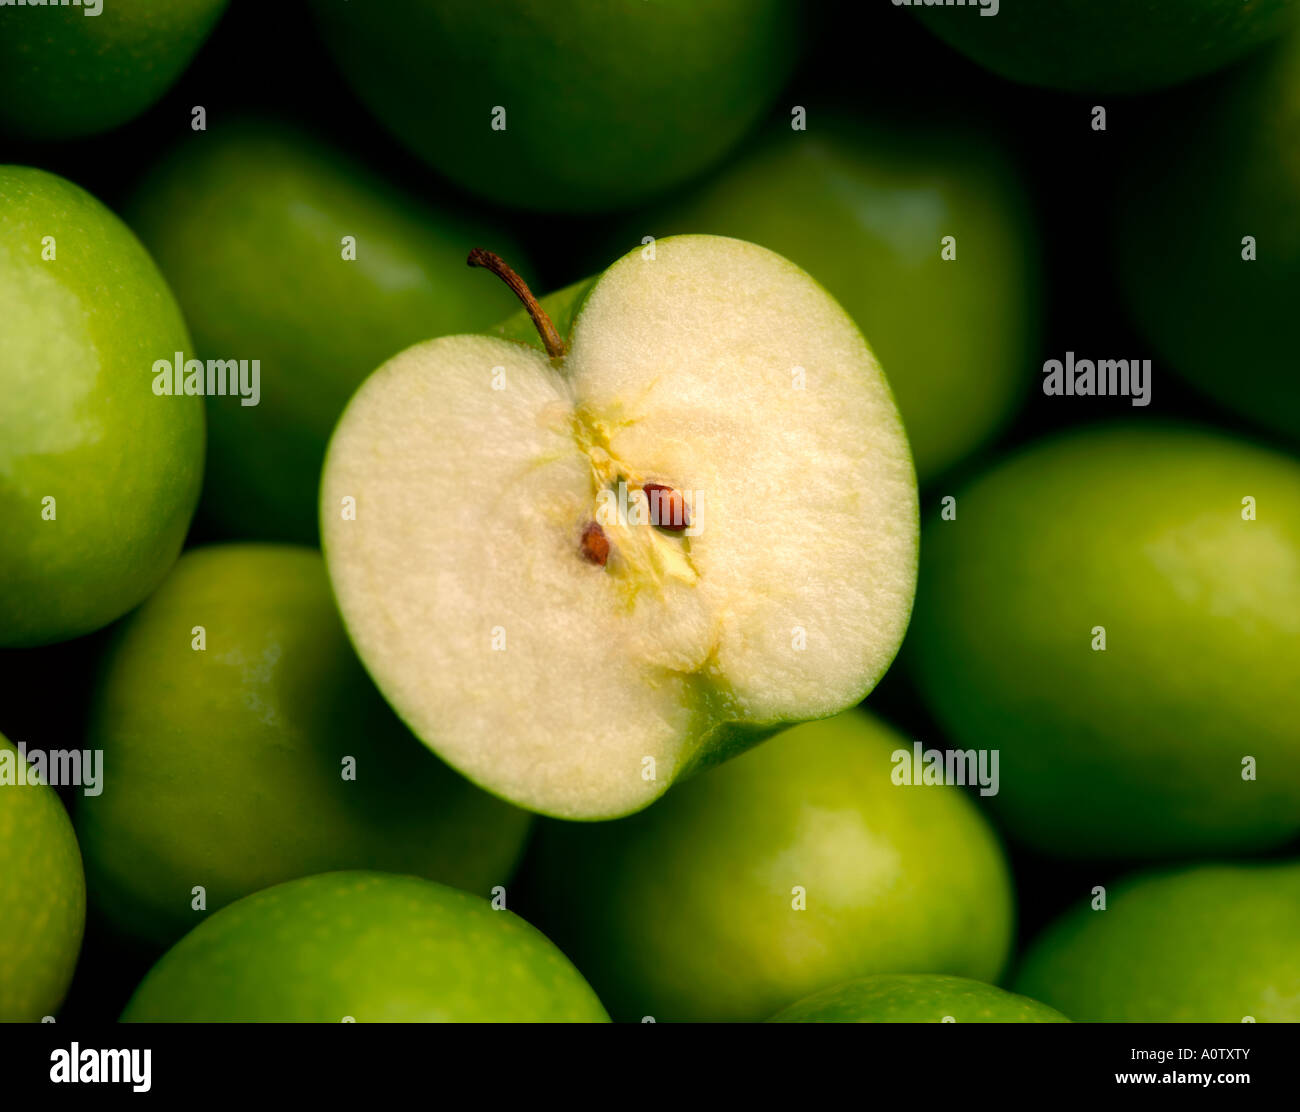 CUT GREEN APPLES - Stock Image